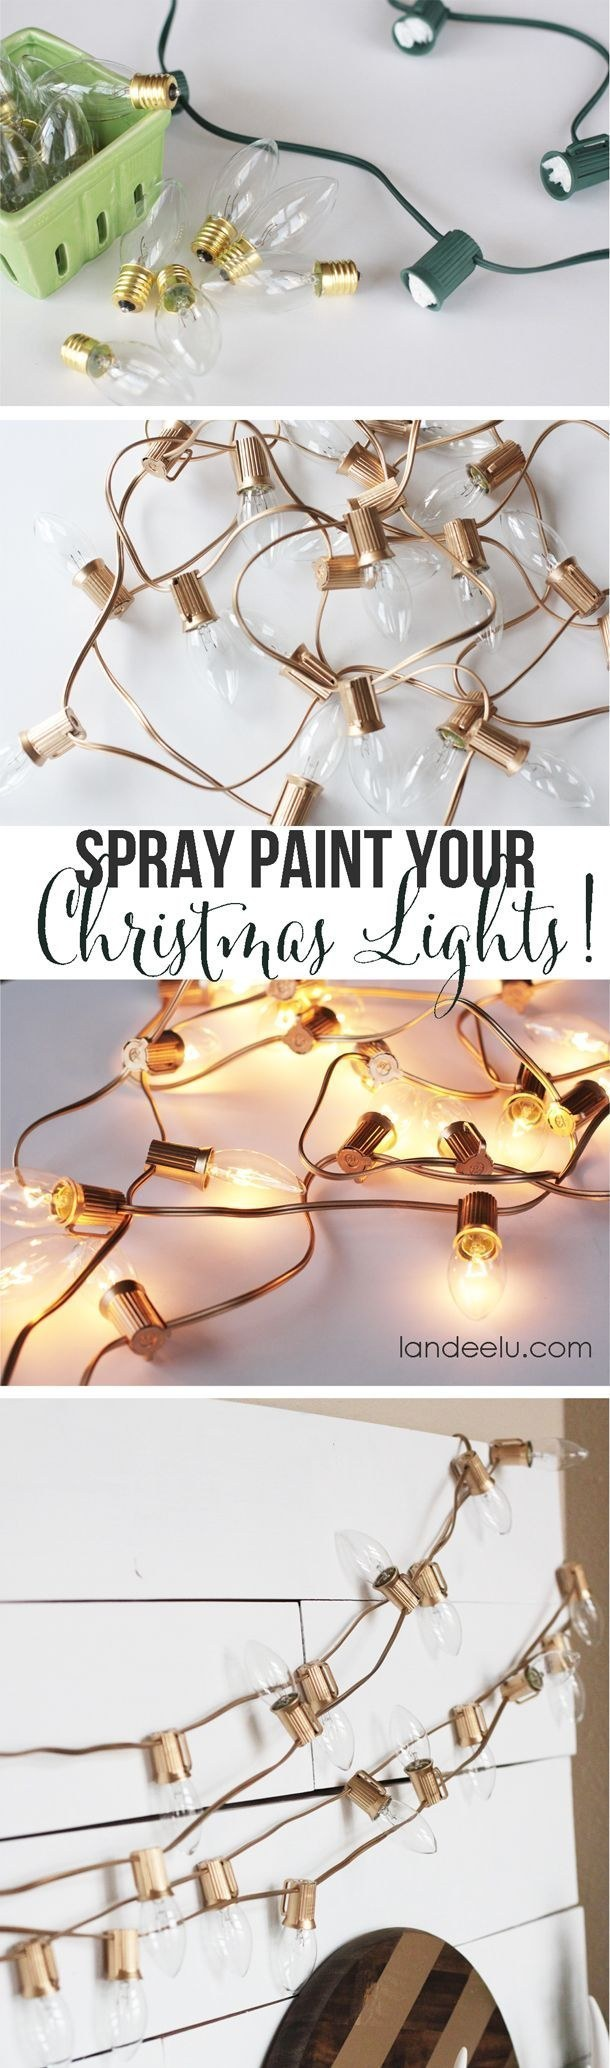 Spray paint holiday bulbs